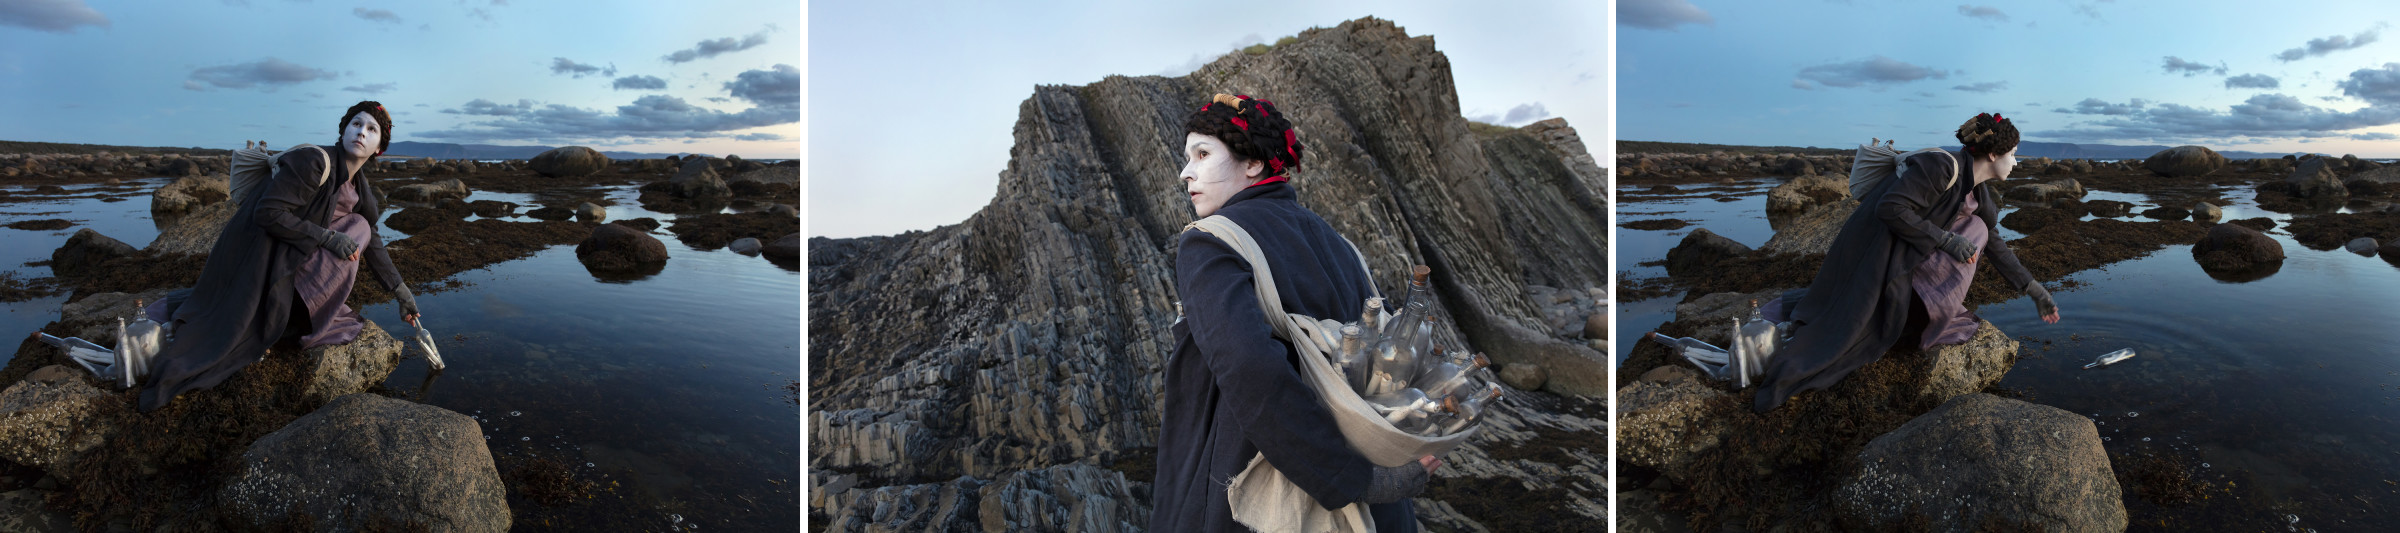 "<span class=""link fancybox-details-link""><a href=""/artists/122/series/as-immense-as-the-sky/34382-meryl-mcmaster-ordovician-tide-2019/"">View Detail Page</a></span><div class=""artist""><strong>Meryl McMaster</strong></div> b. 1988 <div class=""title""><em>Ordovician Tide</em>, 2019</div> <div class=""signed_and_dated"">From the series ""As Immense as the Sky""<br /> Signed, titled, dated, and editioned, au mount verso</div> <div class=""medium"">Set of three Chromogenic prints flush mounted to Aluminum Composite Panel</div> <div class=""dimensions"">Each 40 x 60 inch (101.60 x 152.40 cm)</div> <div class=""edition_details"">Edition of 5 + 2 APs</div>"